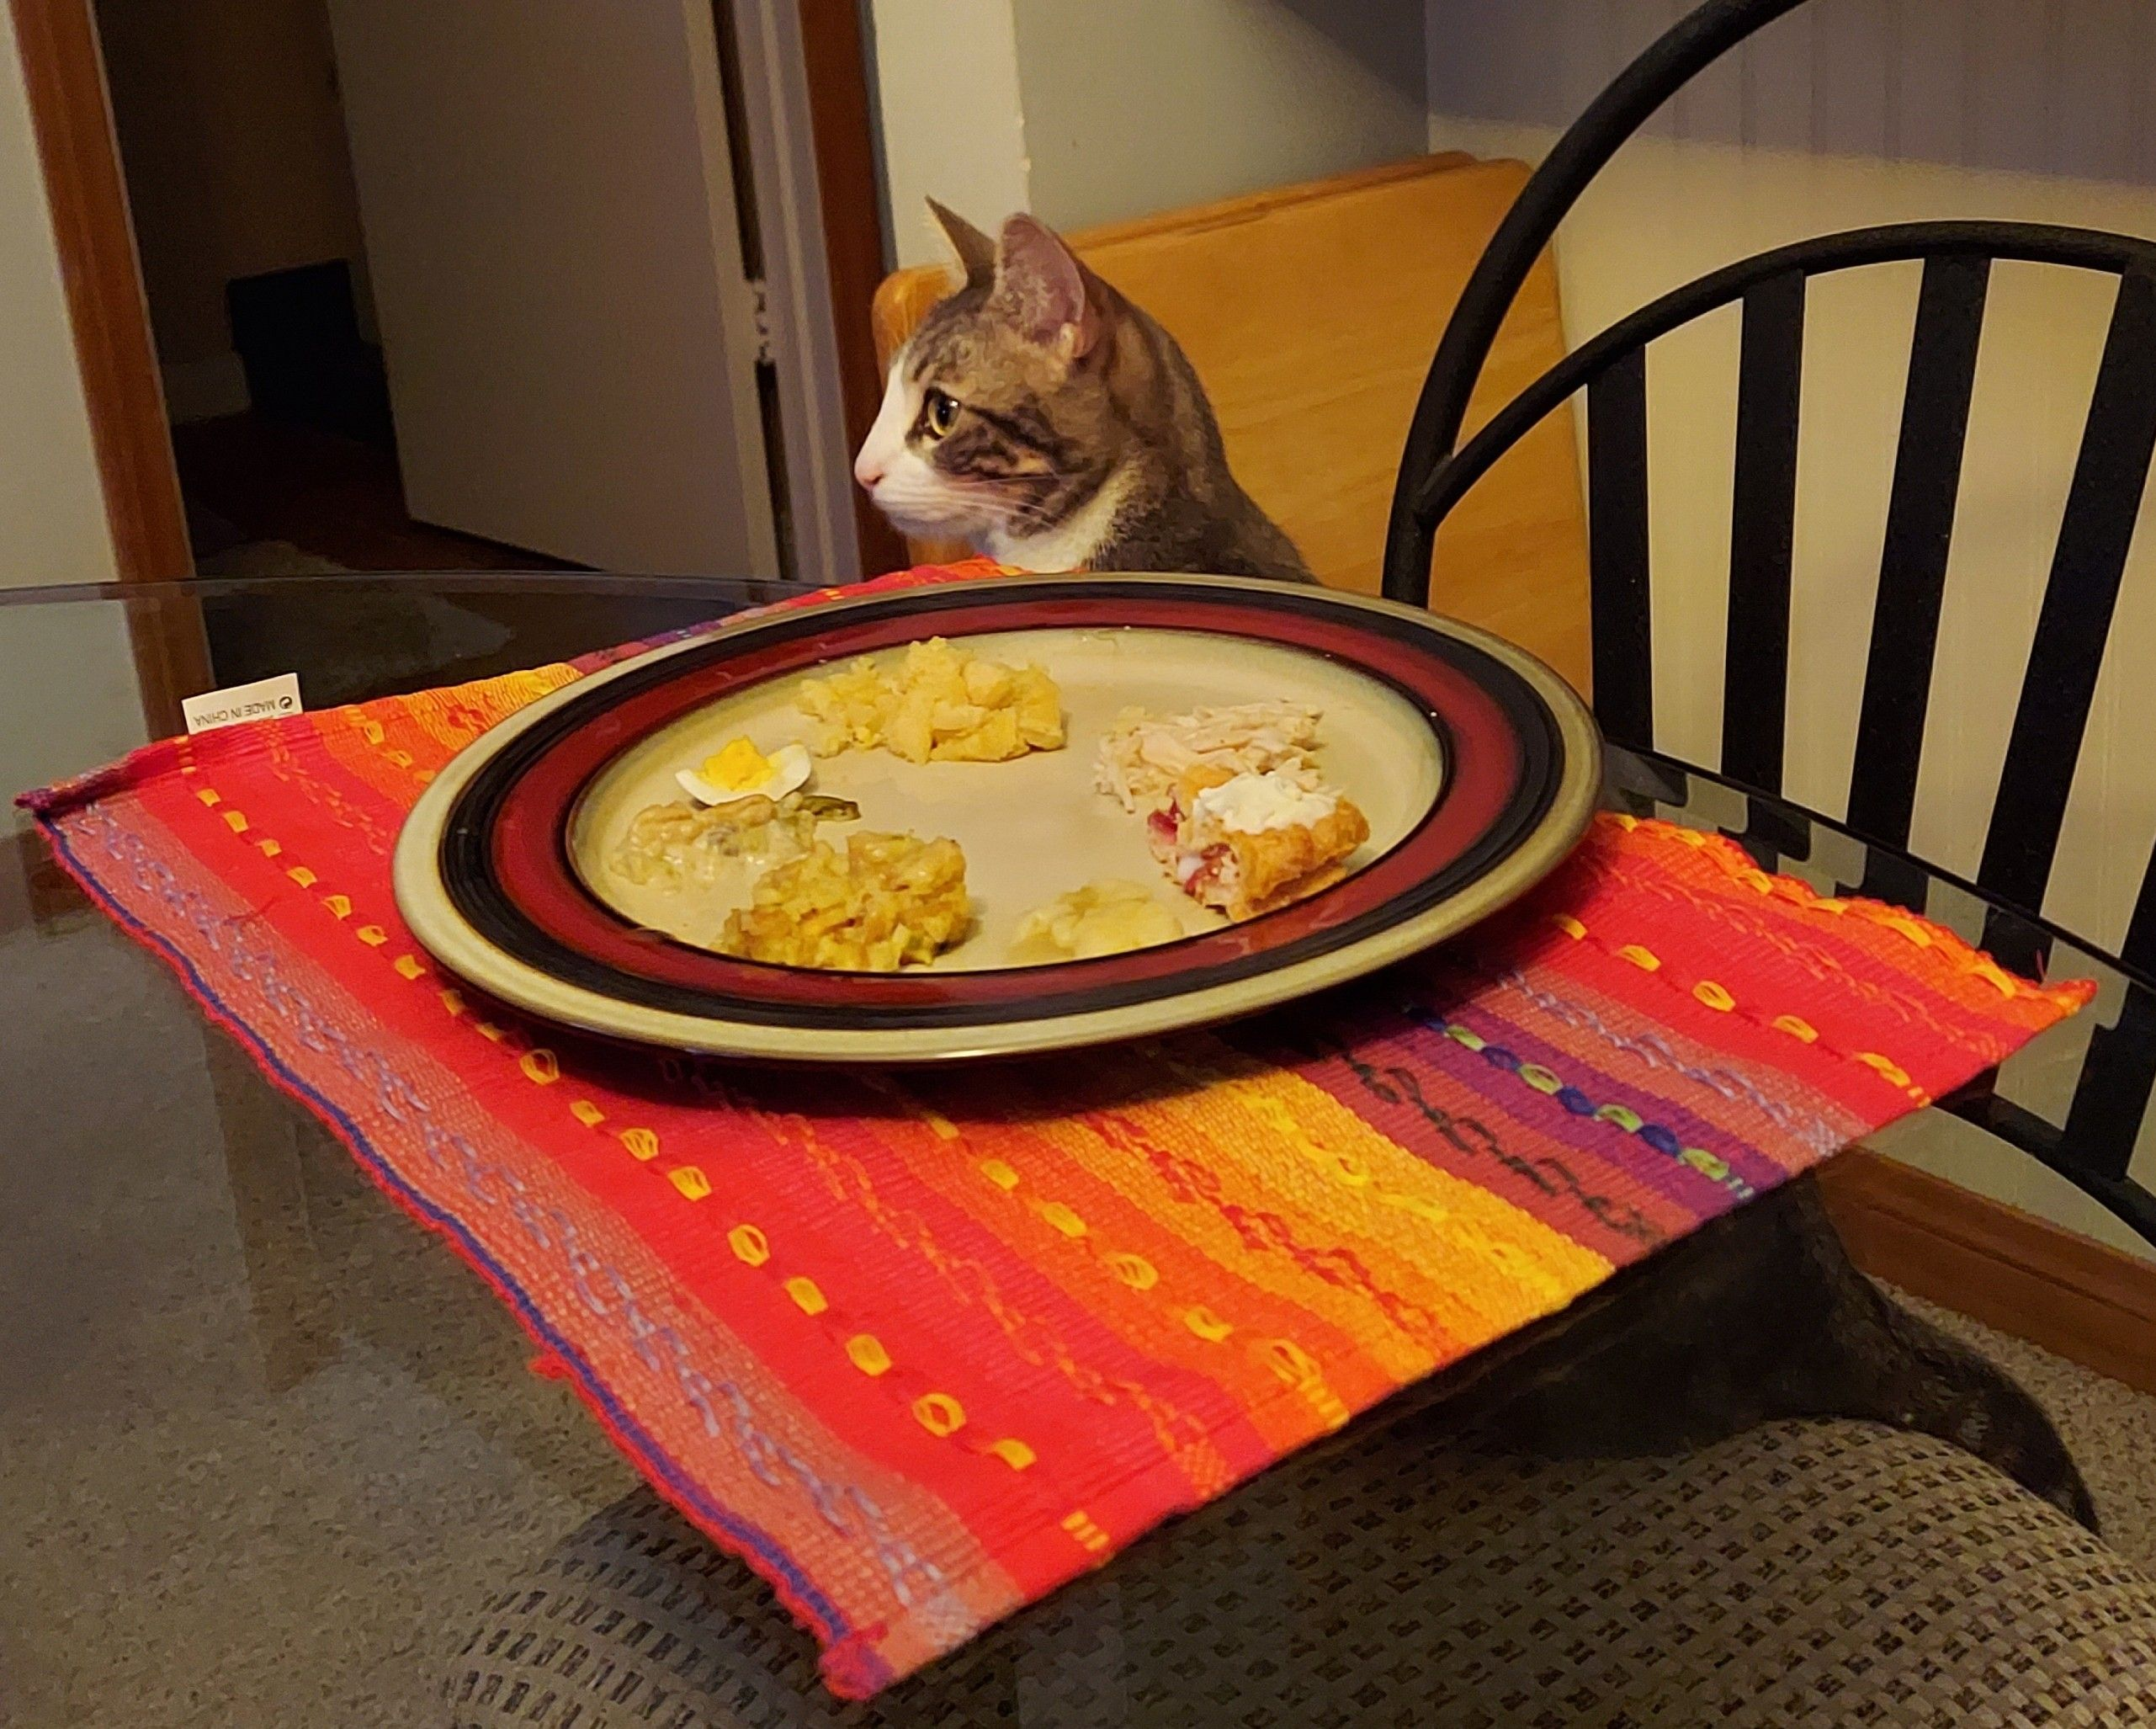 My husband made our cat a plate since it was just us this year.